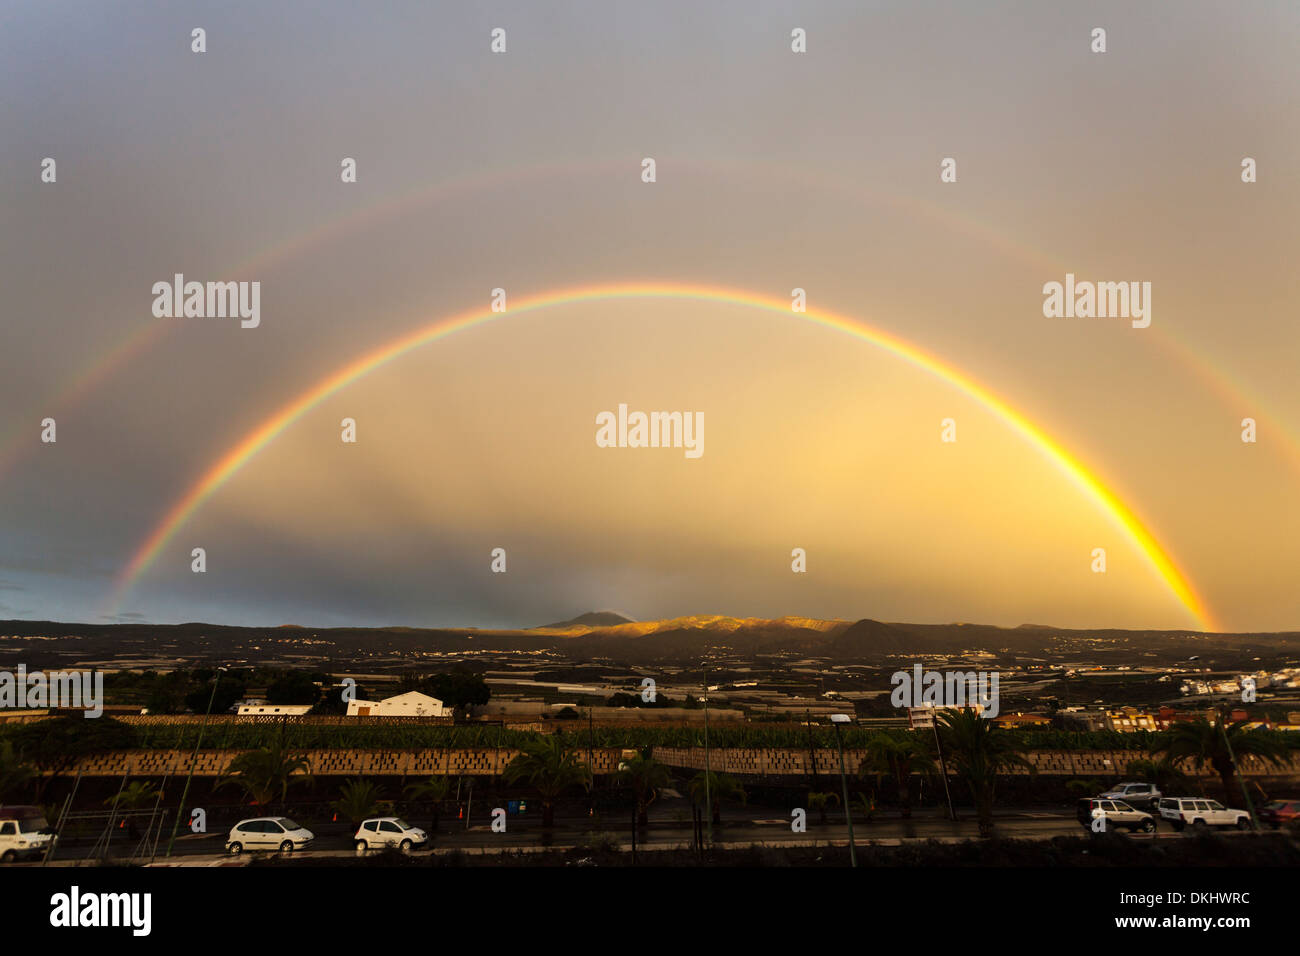 a-double-rainbow-arches-over-the-mountai